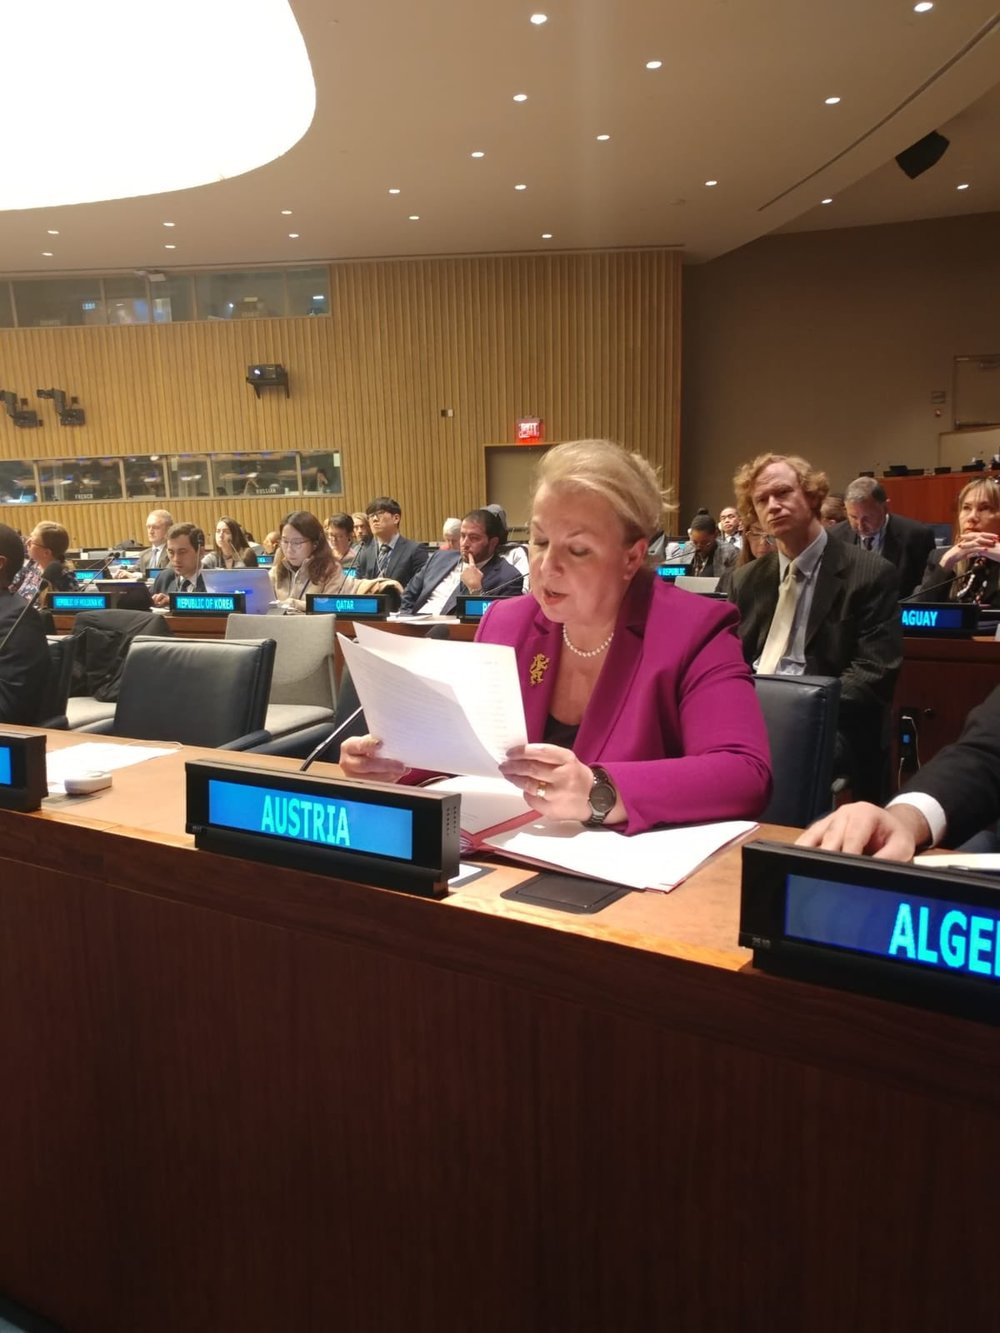 Minister Beate Hartinger-Klein delivers Austria's statement at the U.N. in New York